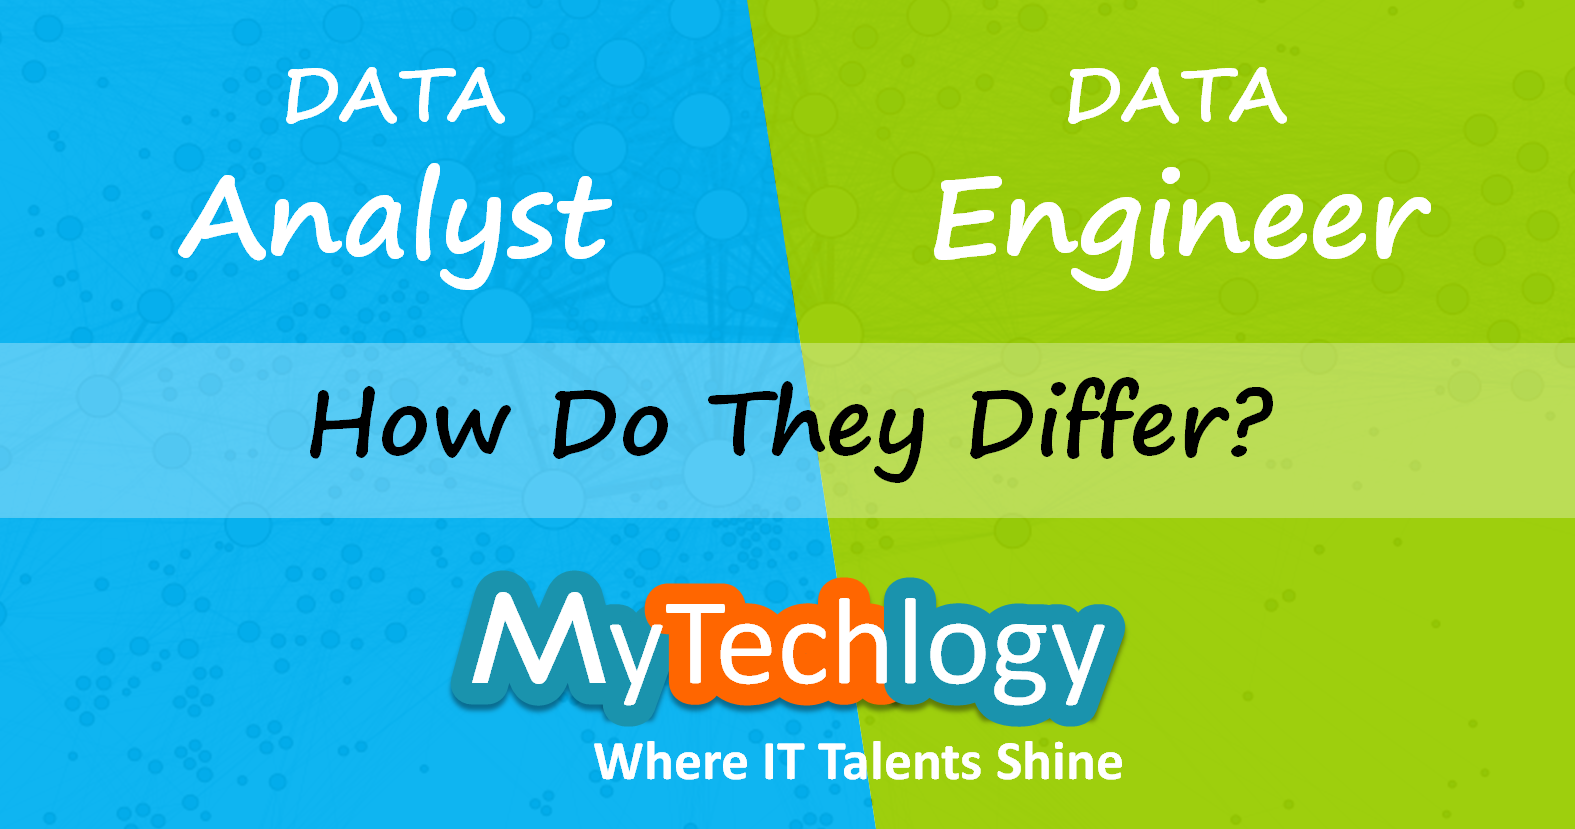 Data Analyst Vs Data Engineer: How Do They Differ? - Image 1